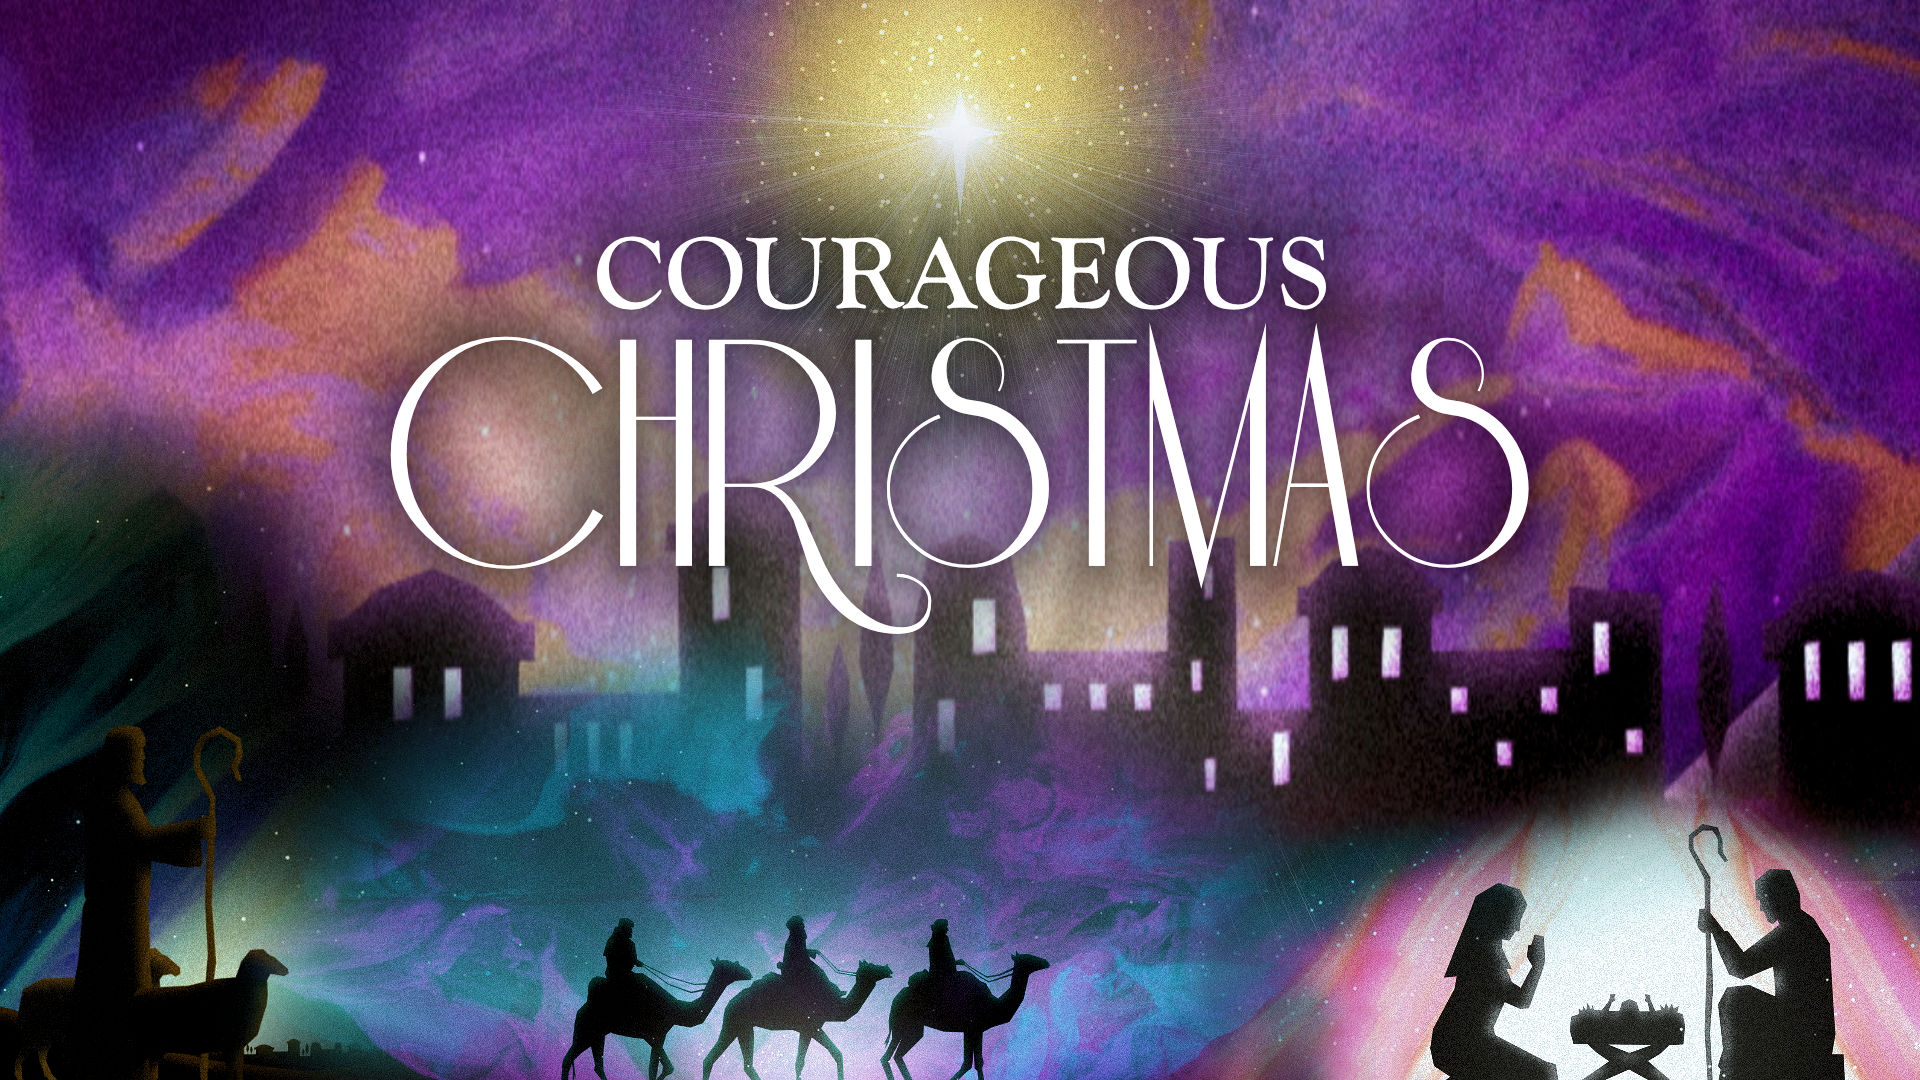 Courageous Christmas:  Courageous Birth